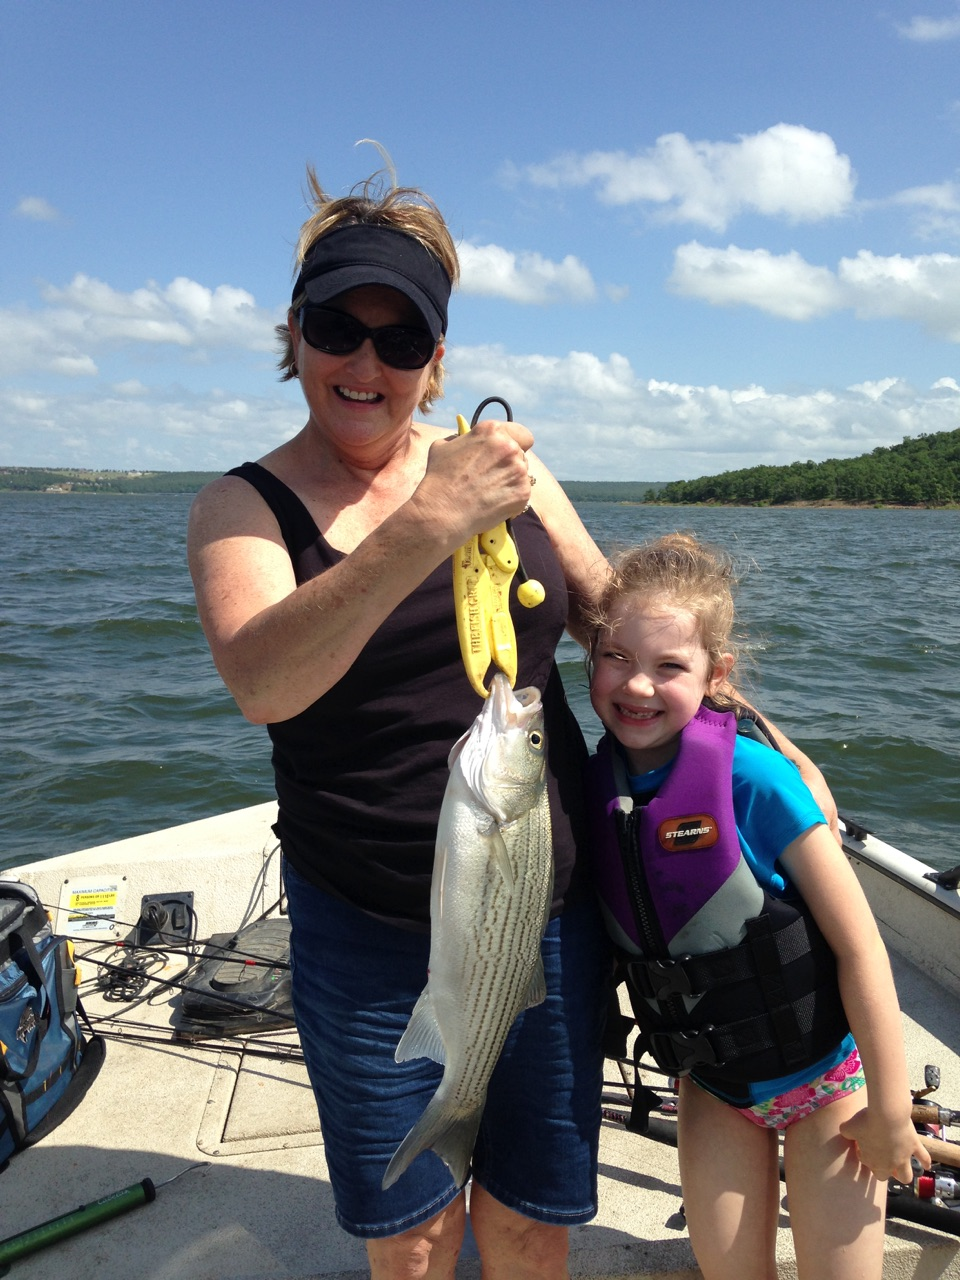 Skiatook lake fishing for hybrid stripers w family 6 21 15 for Grand lake ok fishing report